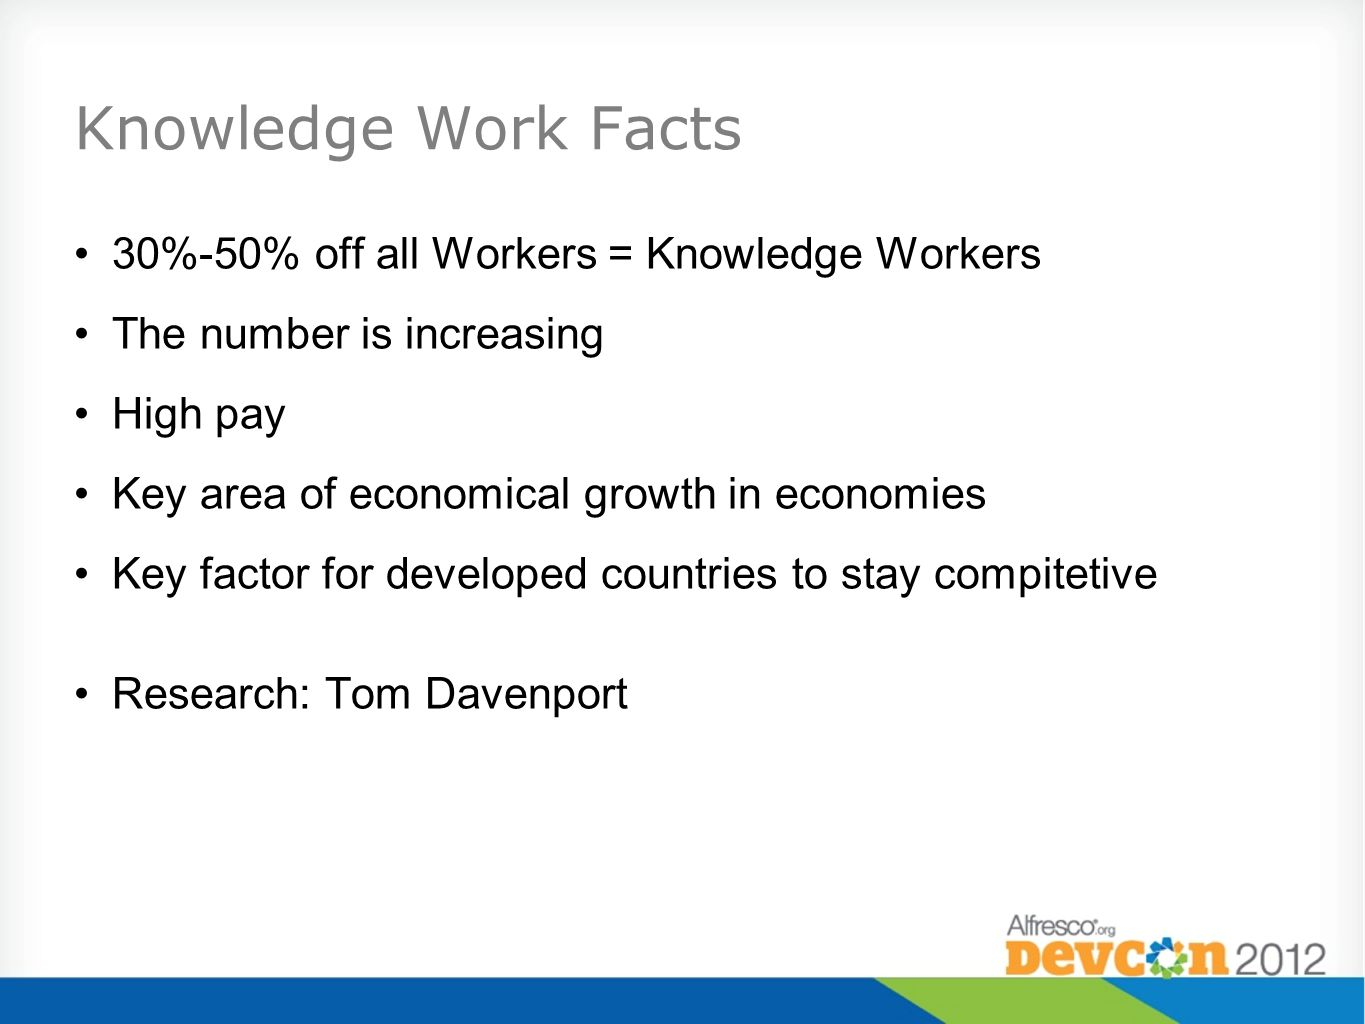 Knowledge Work Facts 30%-50% off all Workers = Knowledge Workers The number is increasing High pay Key area of economical growth in economies Key factor for developed countries to stay compitetive Research: Tom Davenport